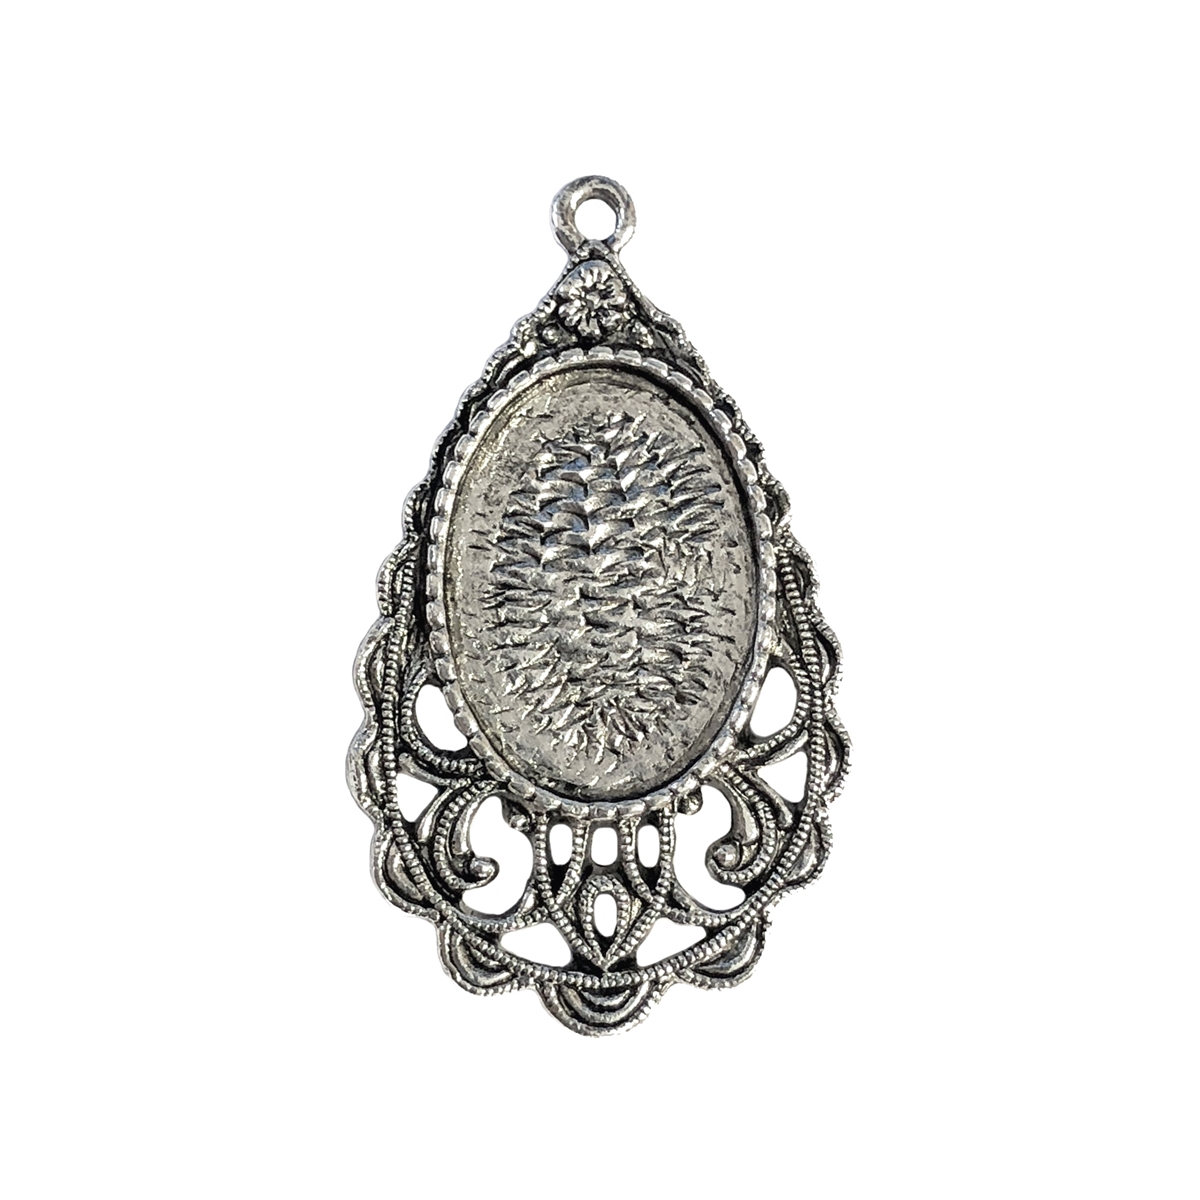 Old silver victorian pendant 09754 lead free pewter bsue by old silver victorian pendant 09754 lead free pewter bsue by mozeypictures Gallery